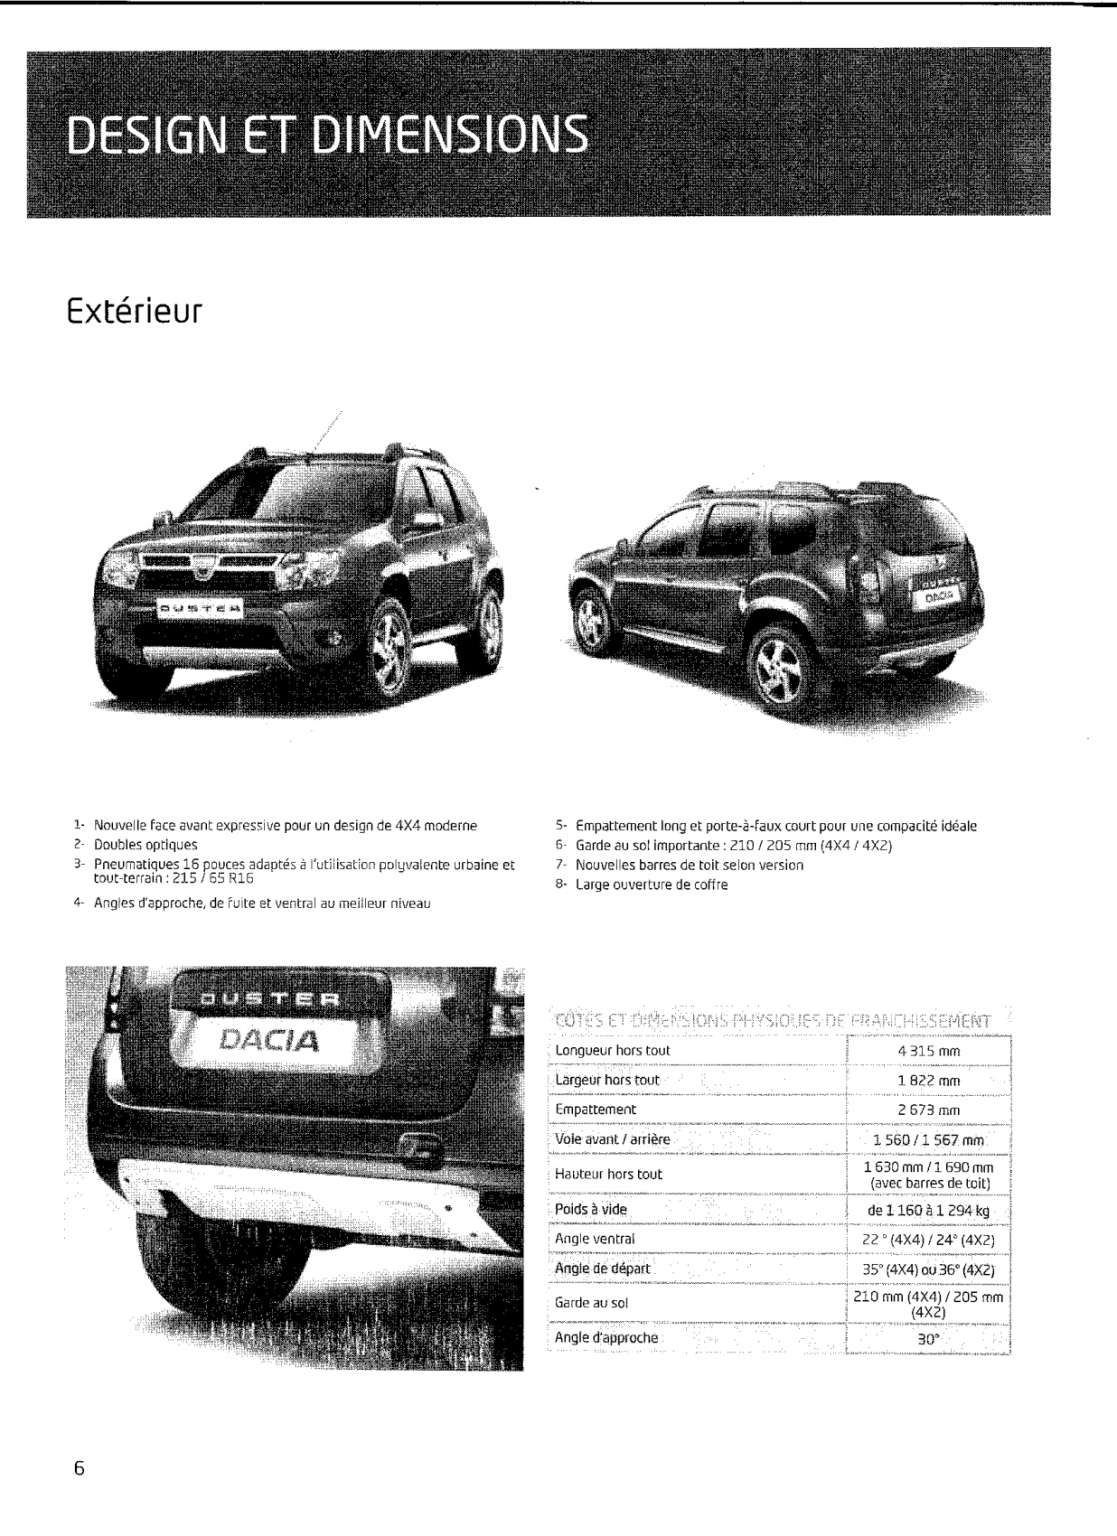 Dacia Duster Leaked Brochure, New Details Released - autoevolution